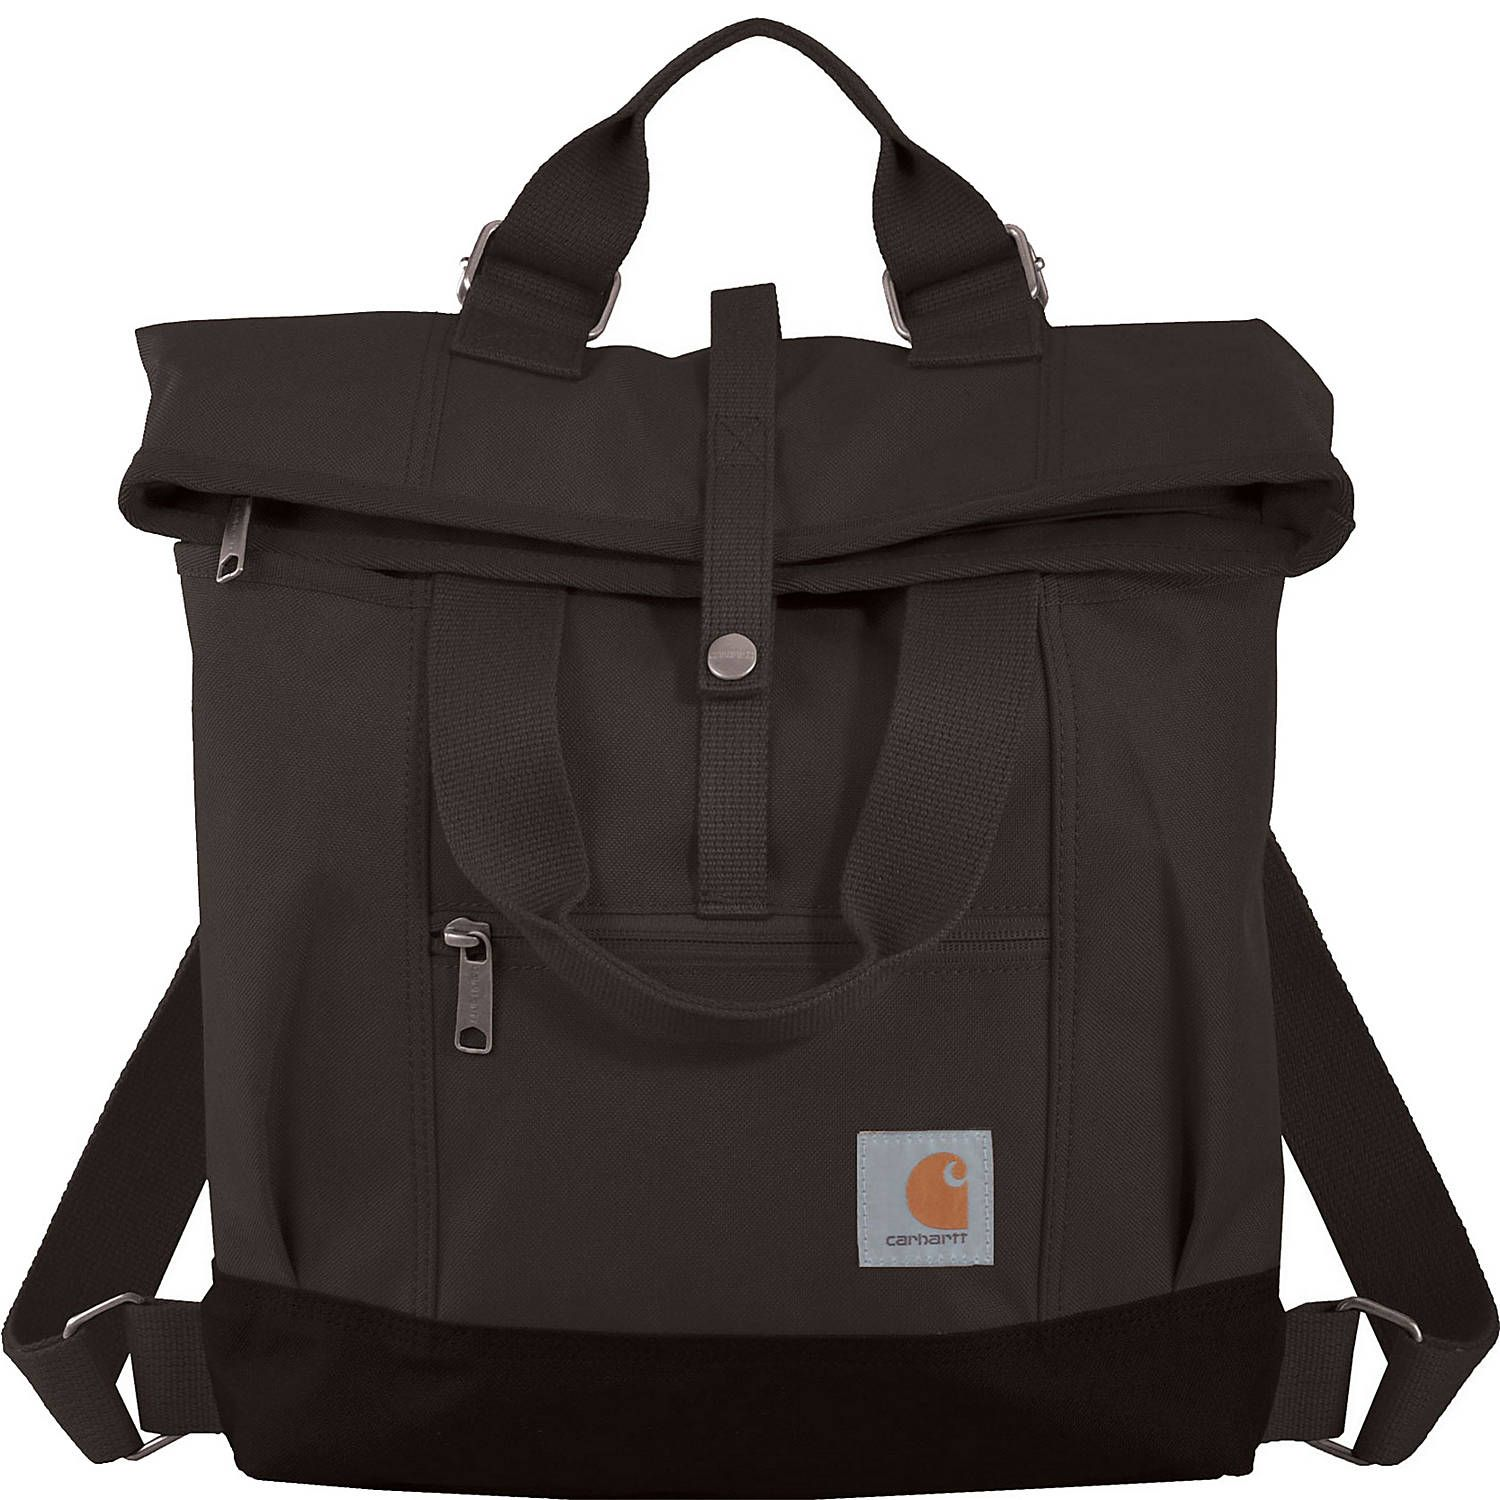 Carhartt Women's Backpack Hybrid #carharttwomen